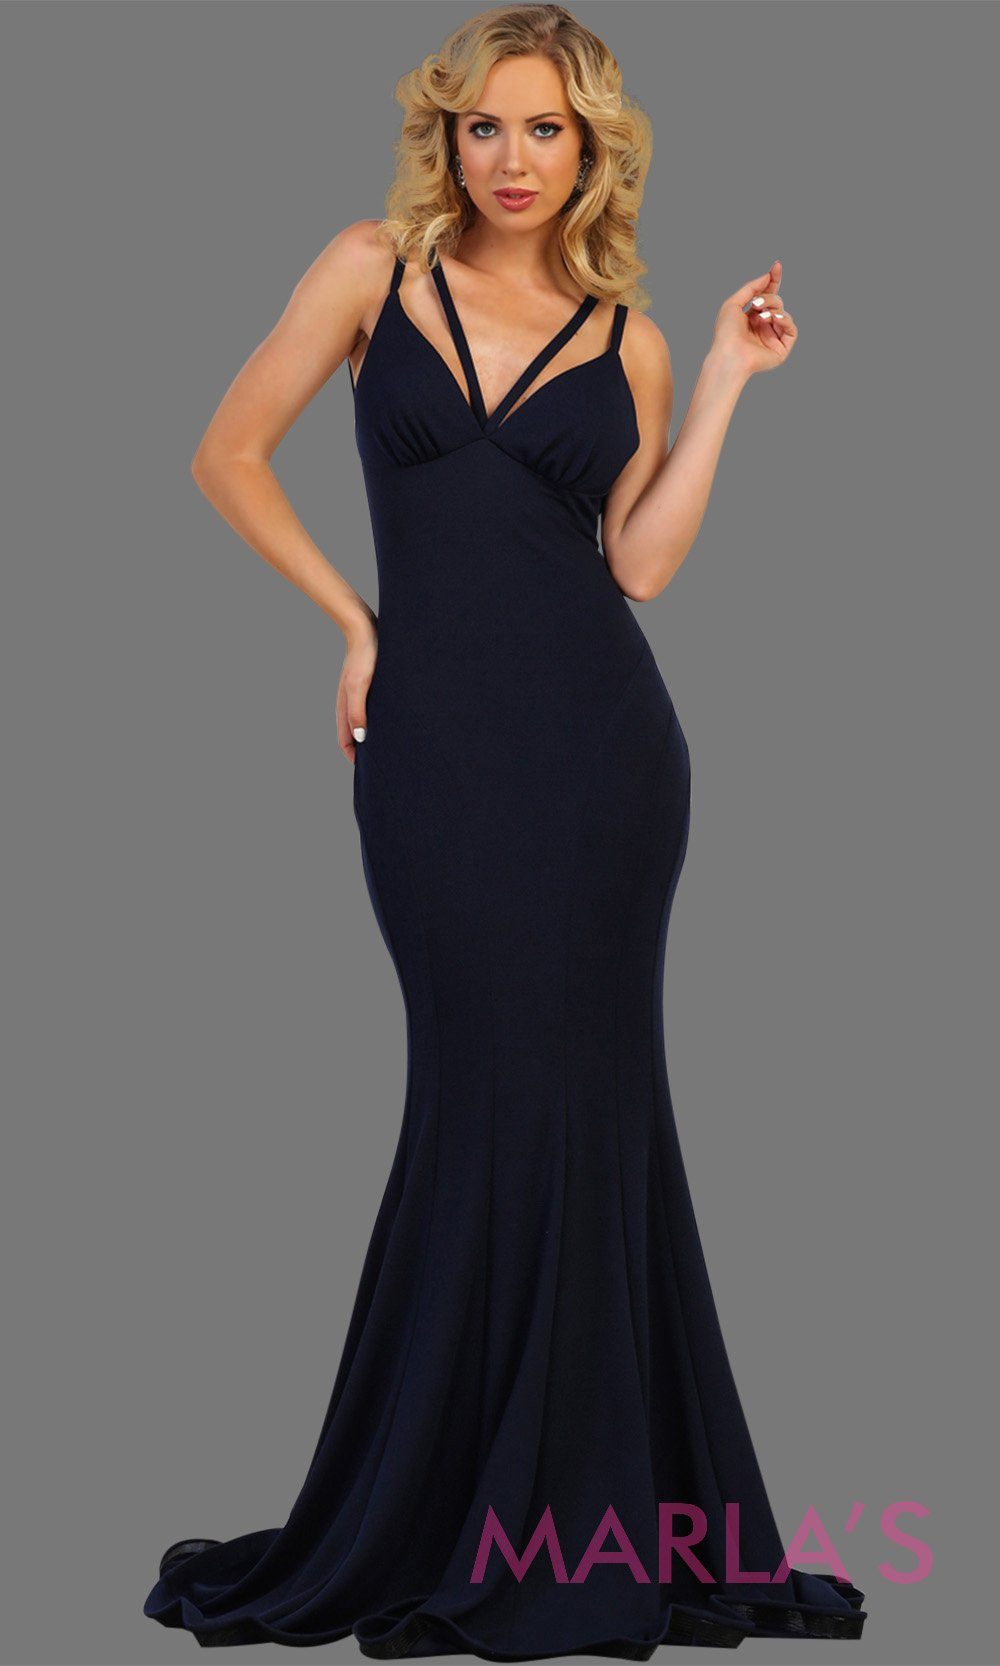 Long navy blue sleek and sexy formal gown has a low back. Perfect for prom, formal party dress, wedding guest dress, gala. formal evening gown. Available in plus sizes.